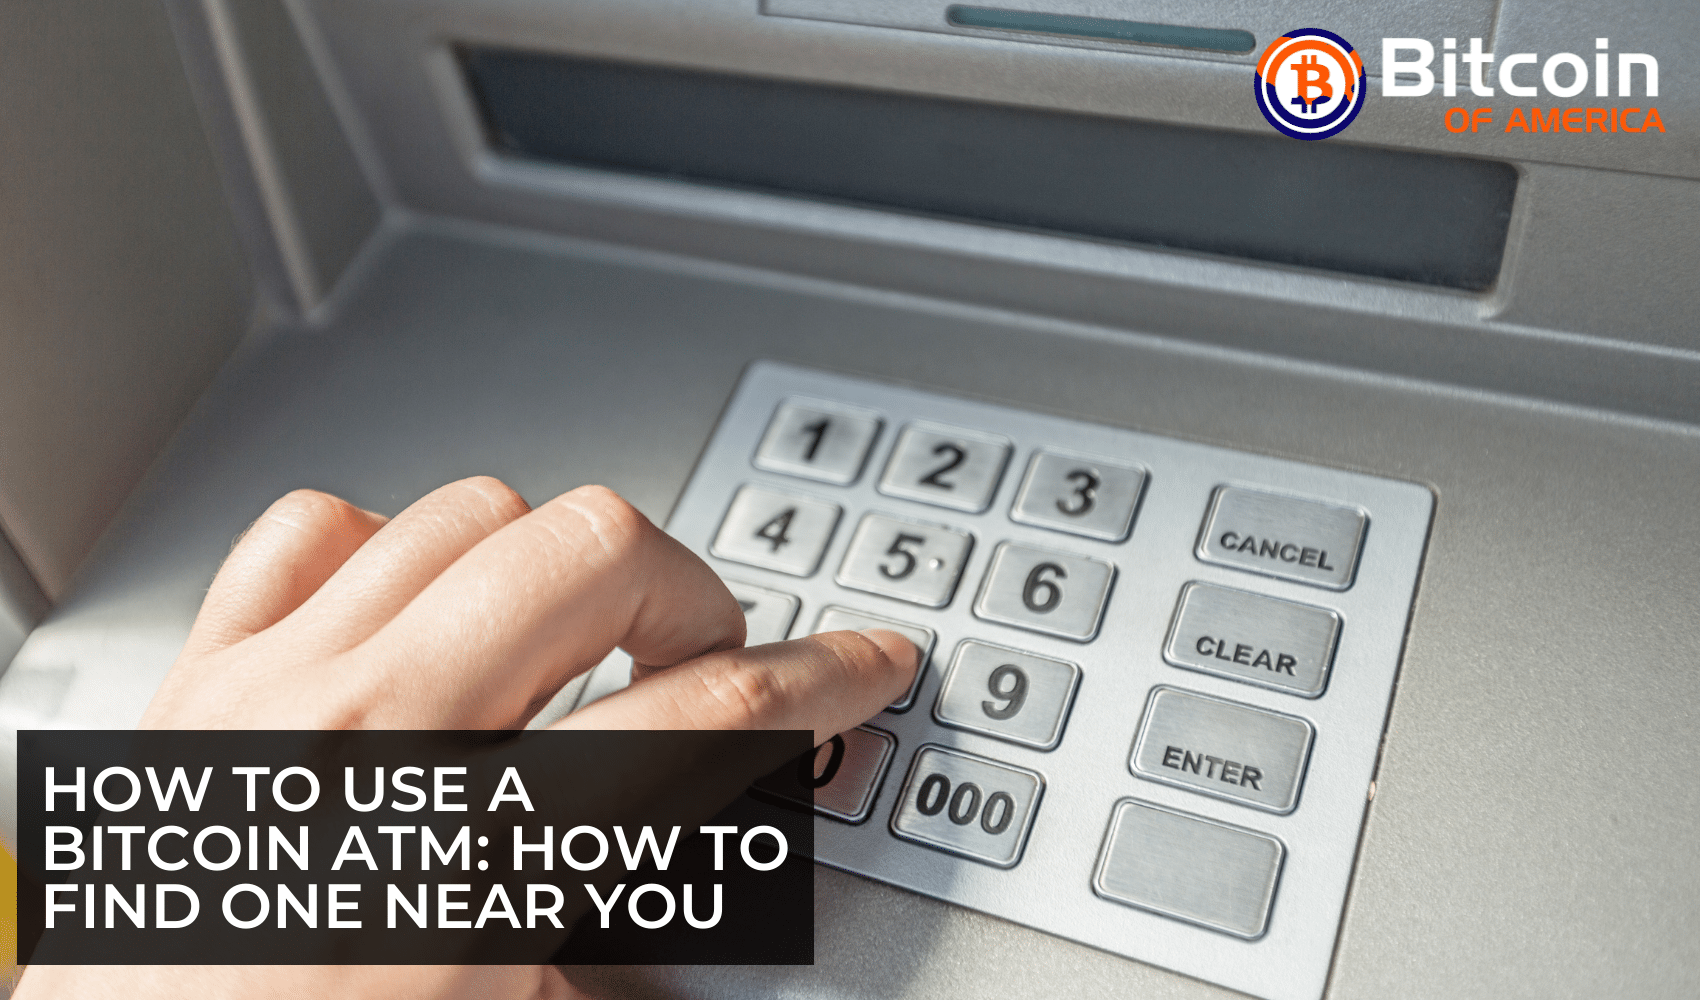 How To Use A Bitcoin ATM: How to Find one Near You